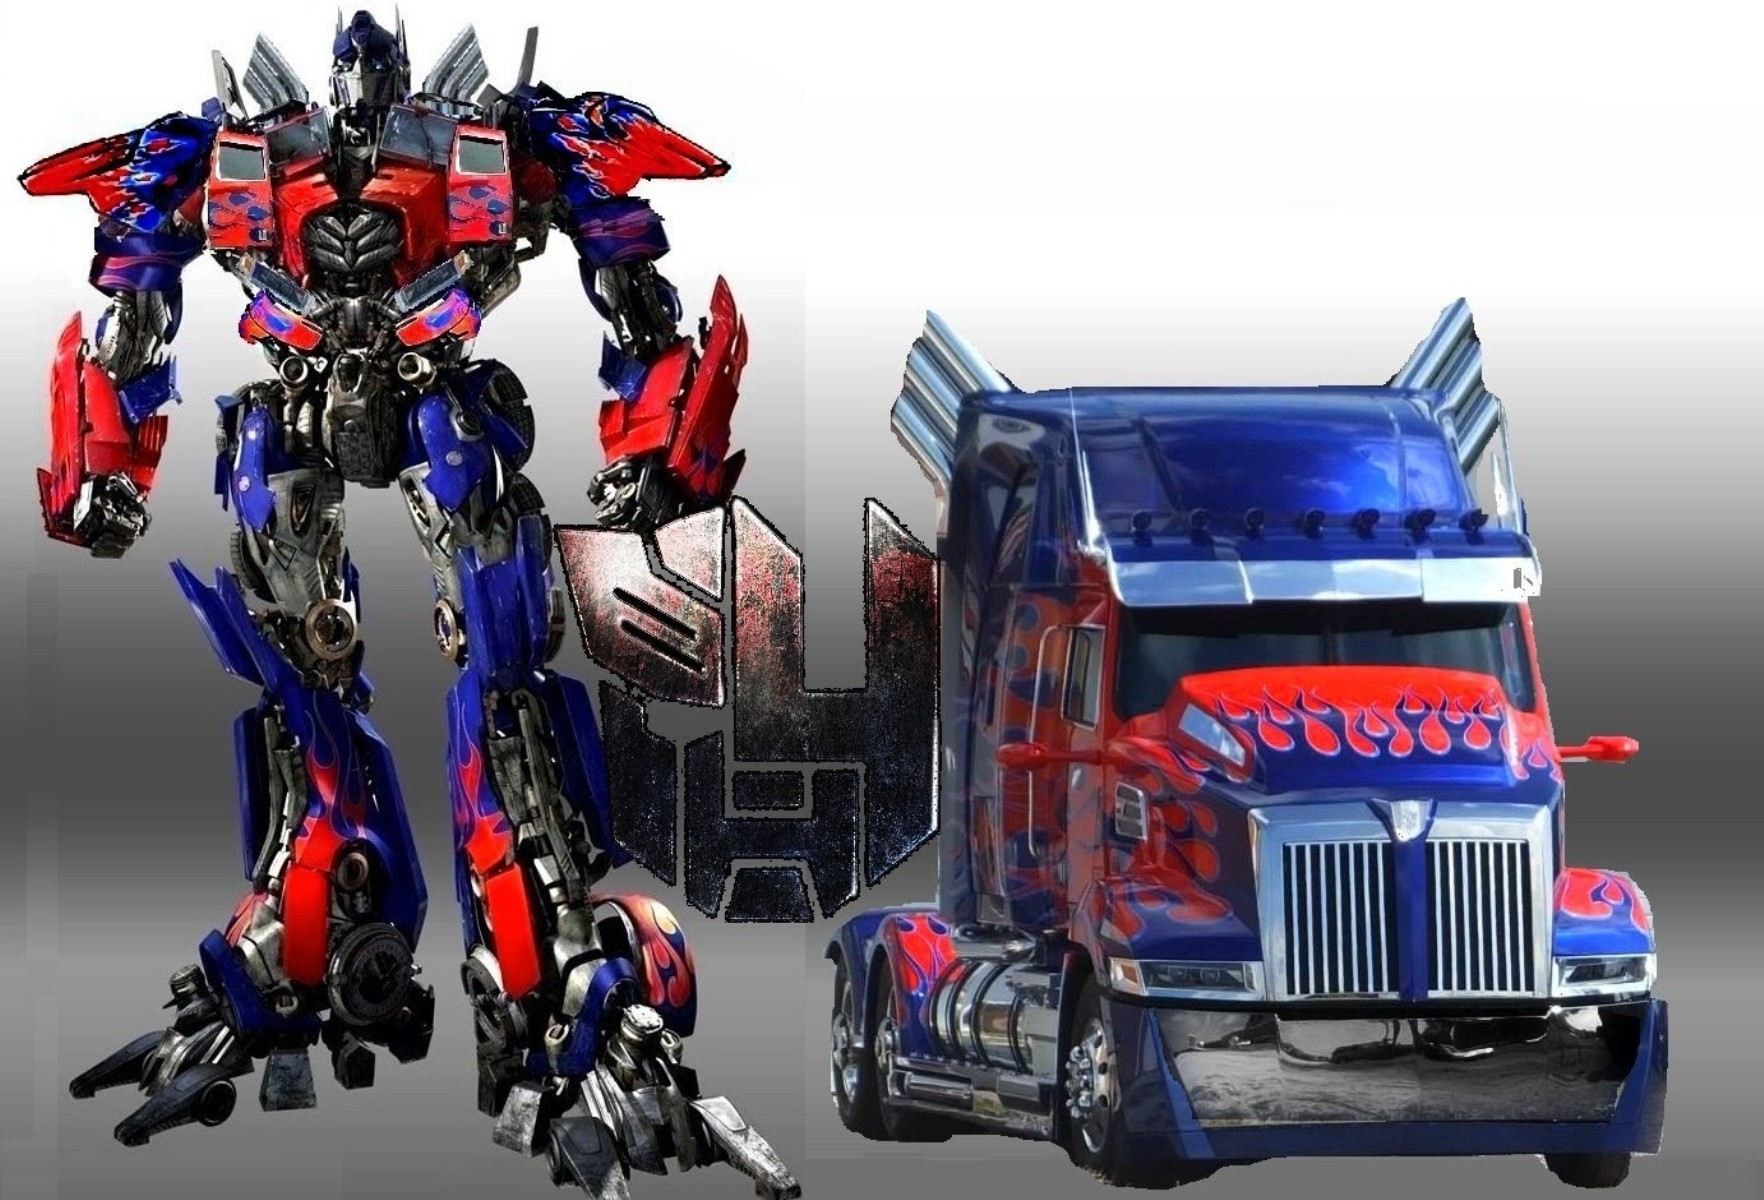 Optimus Prime Transformers Autobots 1920x1080 Wallpaper